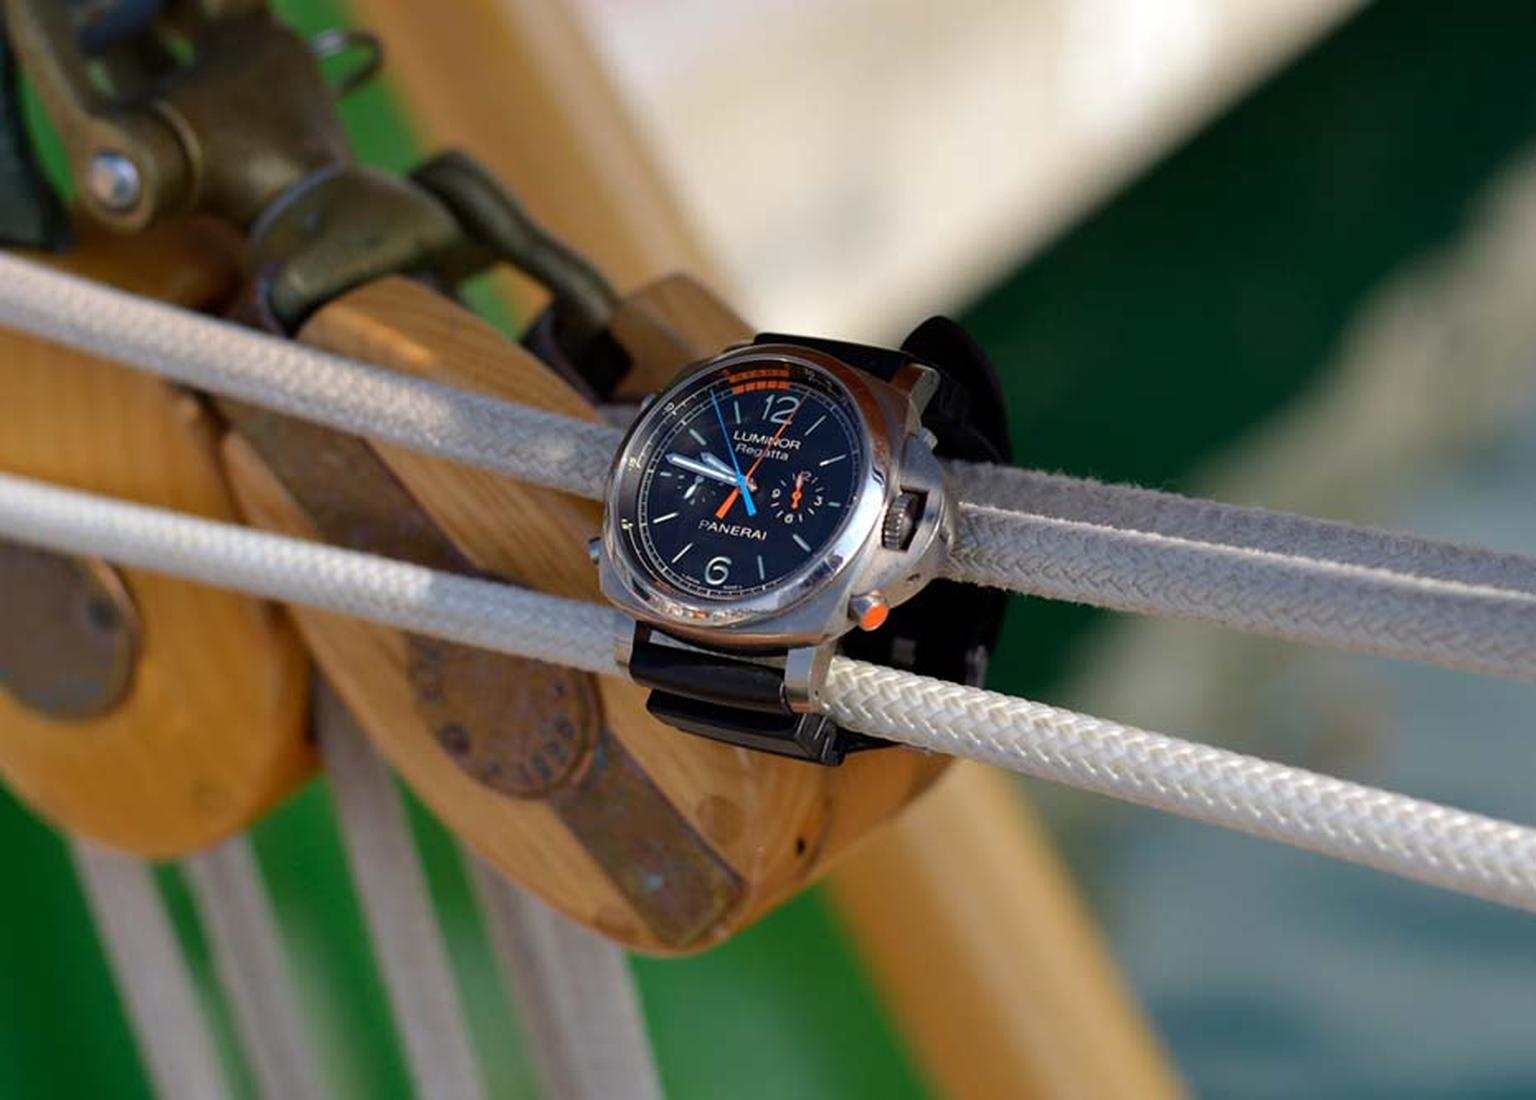 A sailor's best mate, the Panerai Luminor 1950 Regatta 3 Days Chrono Flyback Automatic watch, includes a handy tachymeter scale to gauge the speed of your wake in nautical knots.